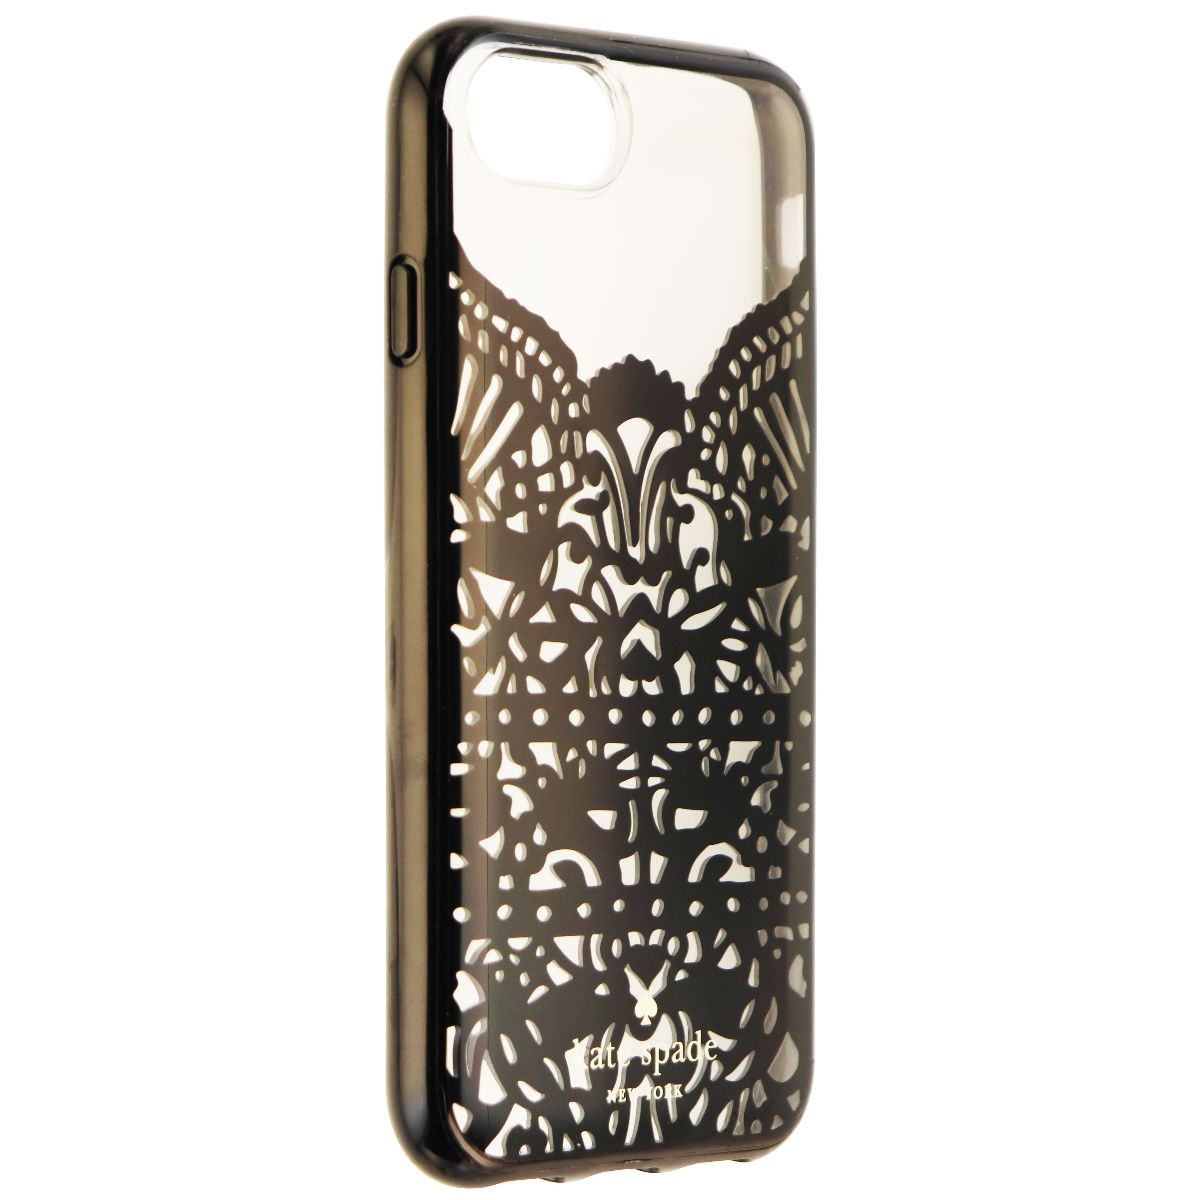 Kate Spade Lace Cage Series Hybrid Hard Case for iPhone 8 7 6s - Blk Lace/Clear